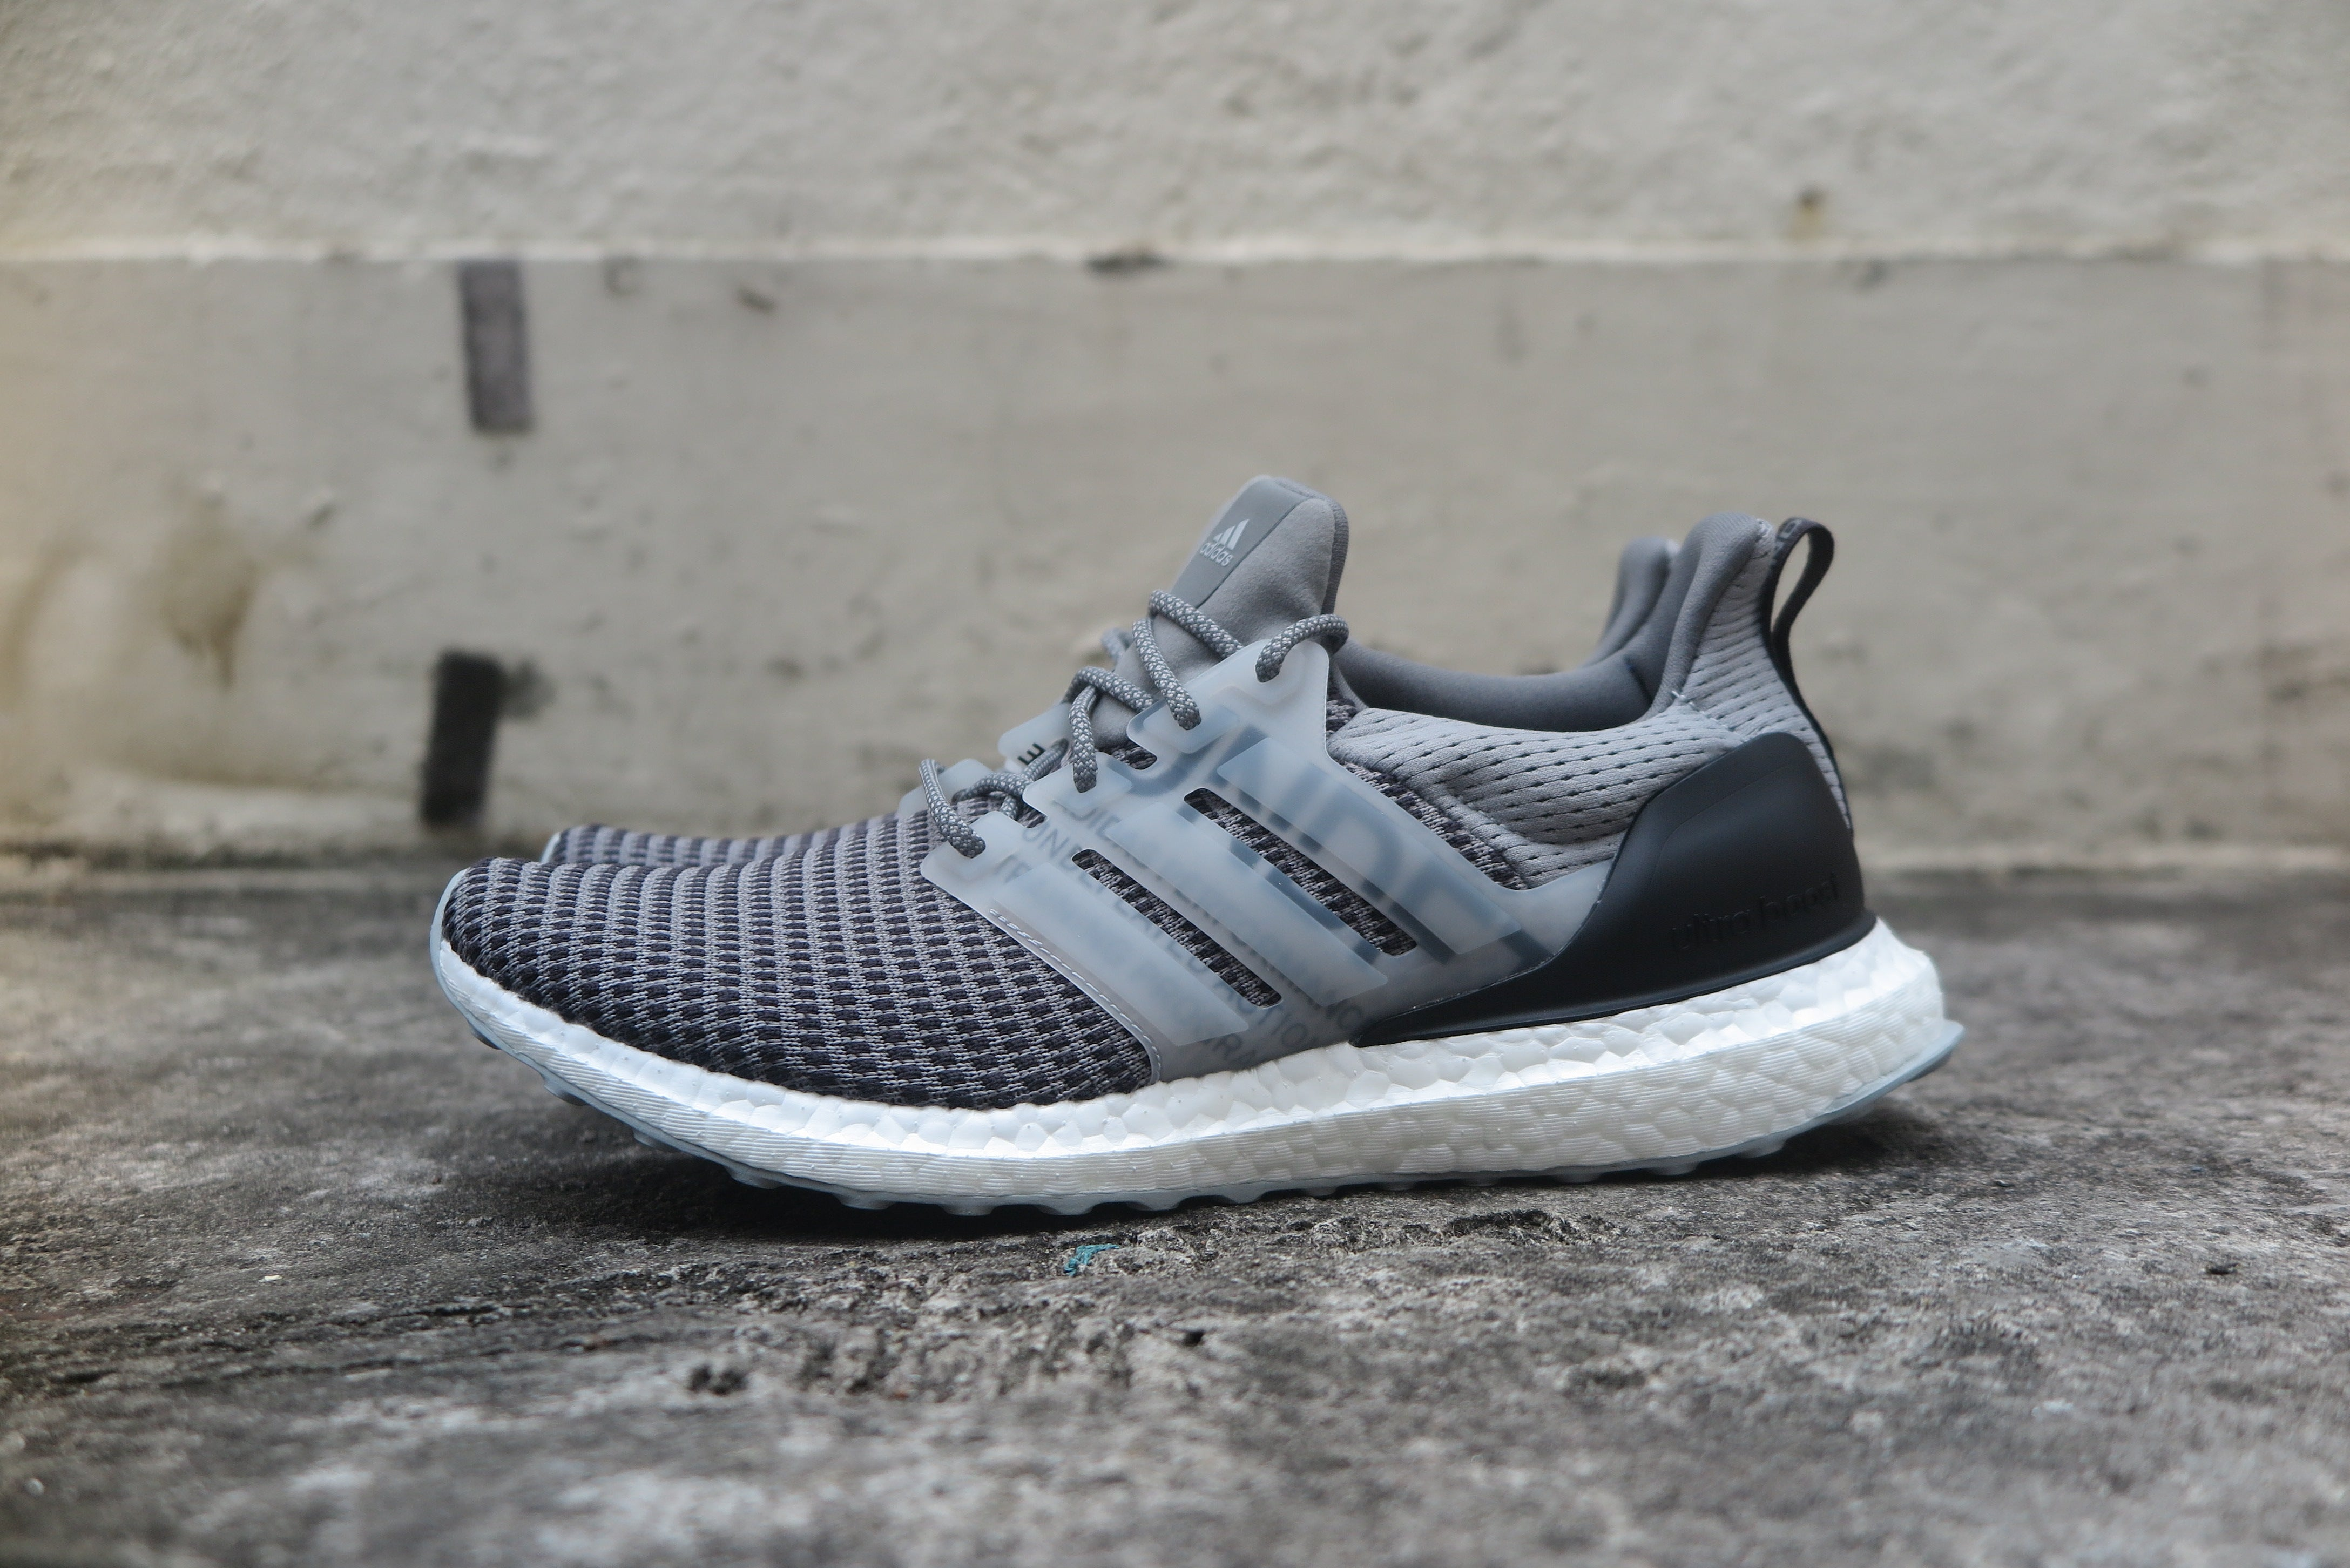 Undefeated x adidas Ultra Boost - Shift Grey Cinder Utility Black  CG7148- 0058770d464c1